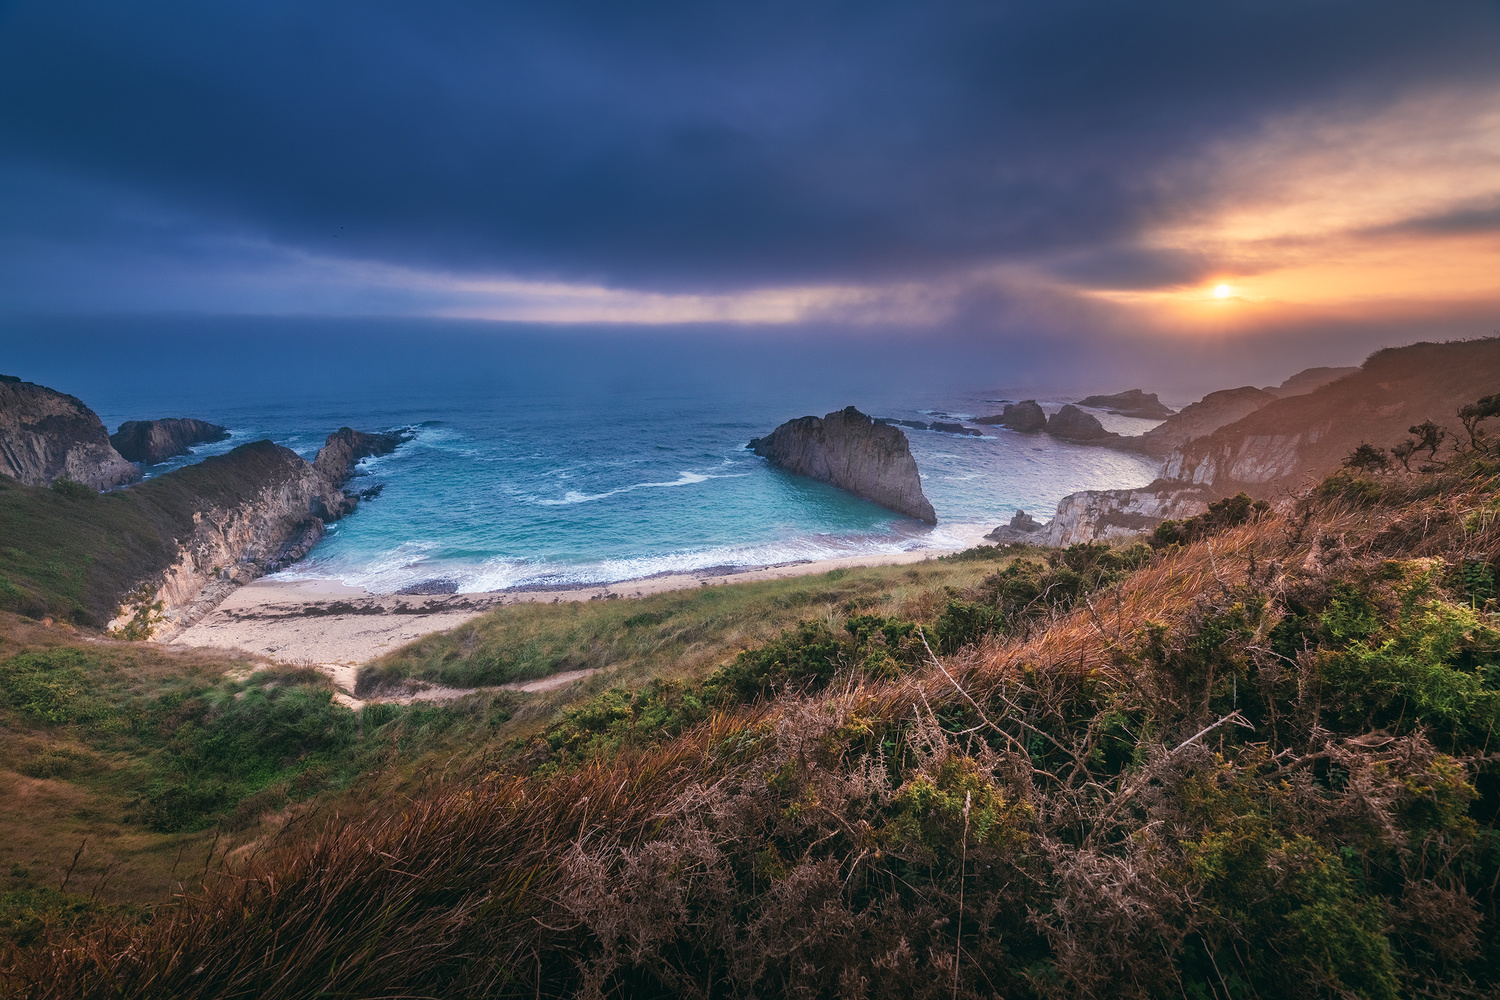 Asturias - Playa Mexota Sunrise by Jean Claude Castor